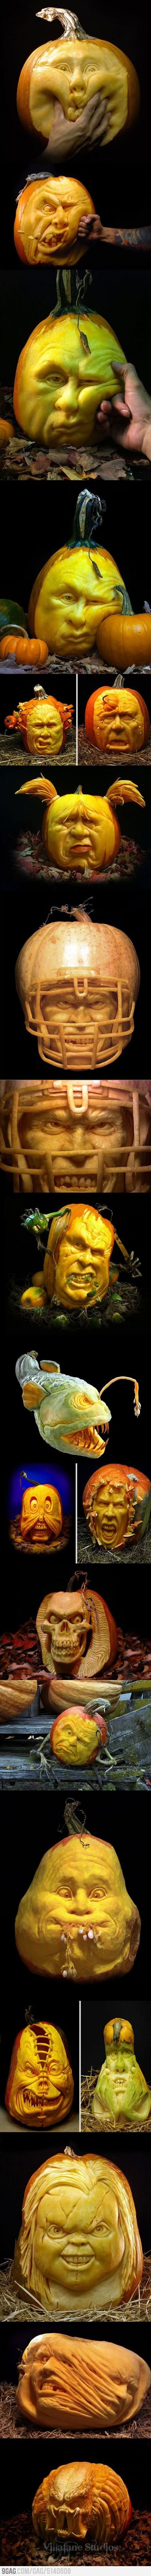 Awesome pumpkins carving !